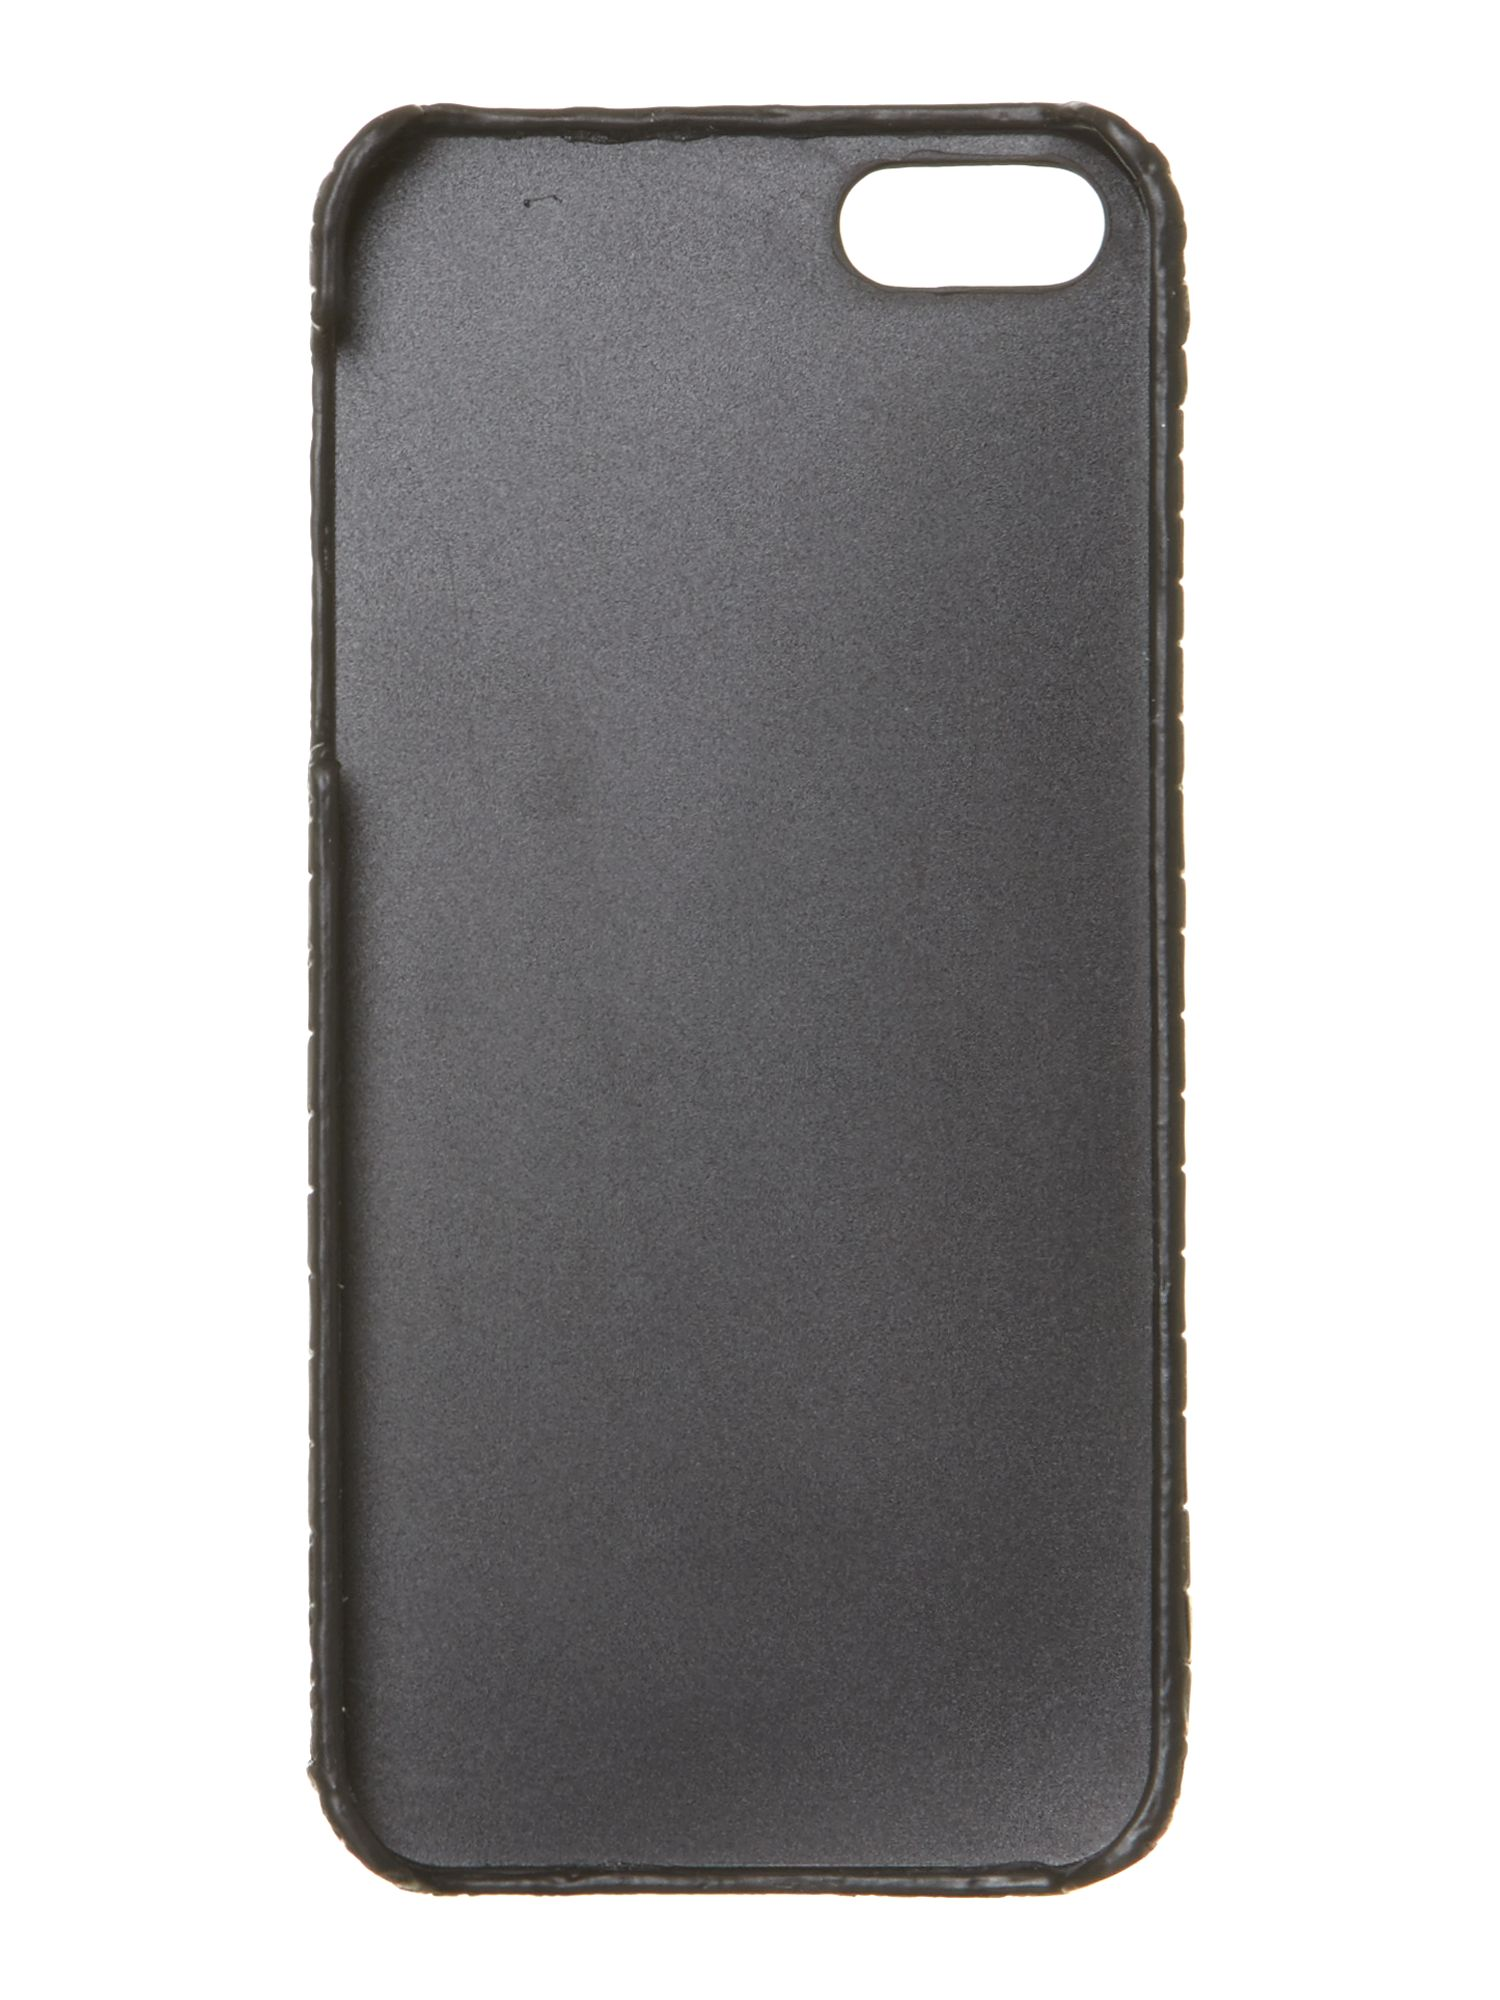 Lizard black leather Iphone case